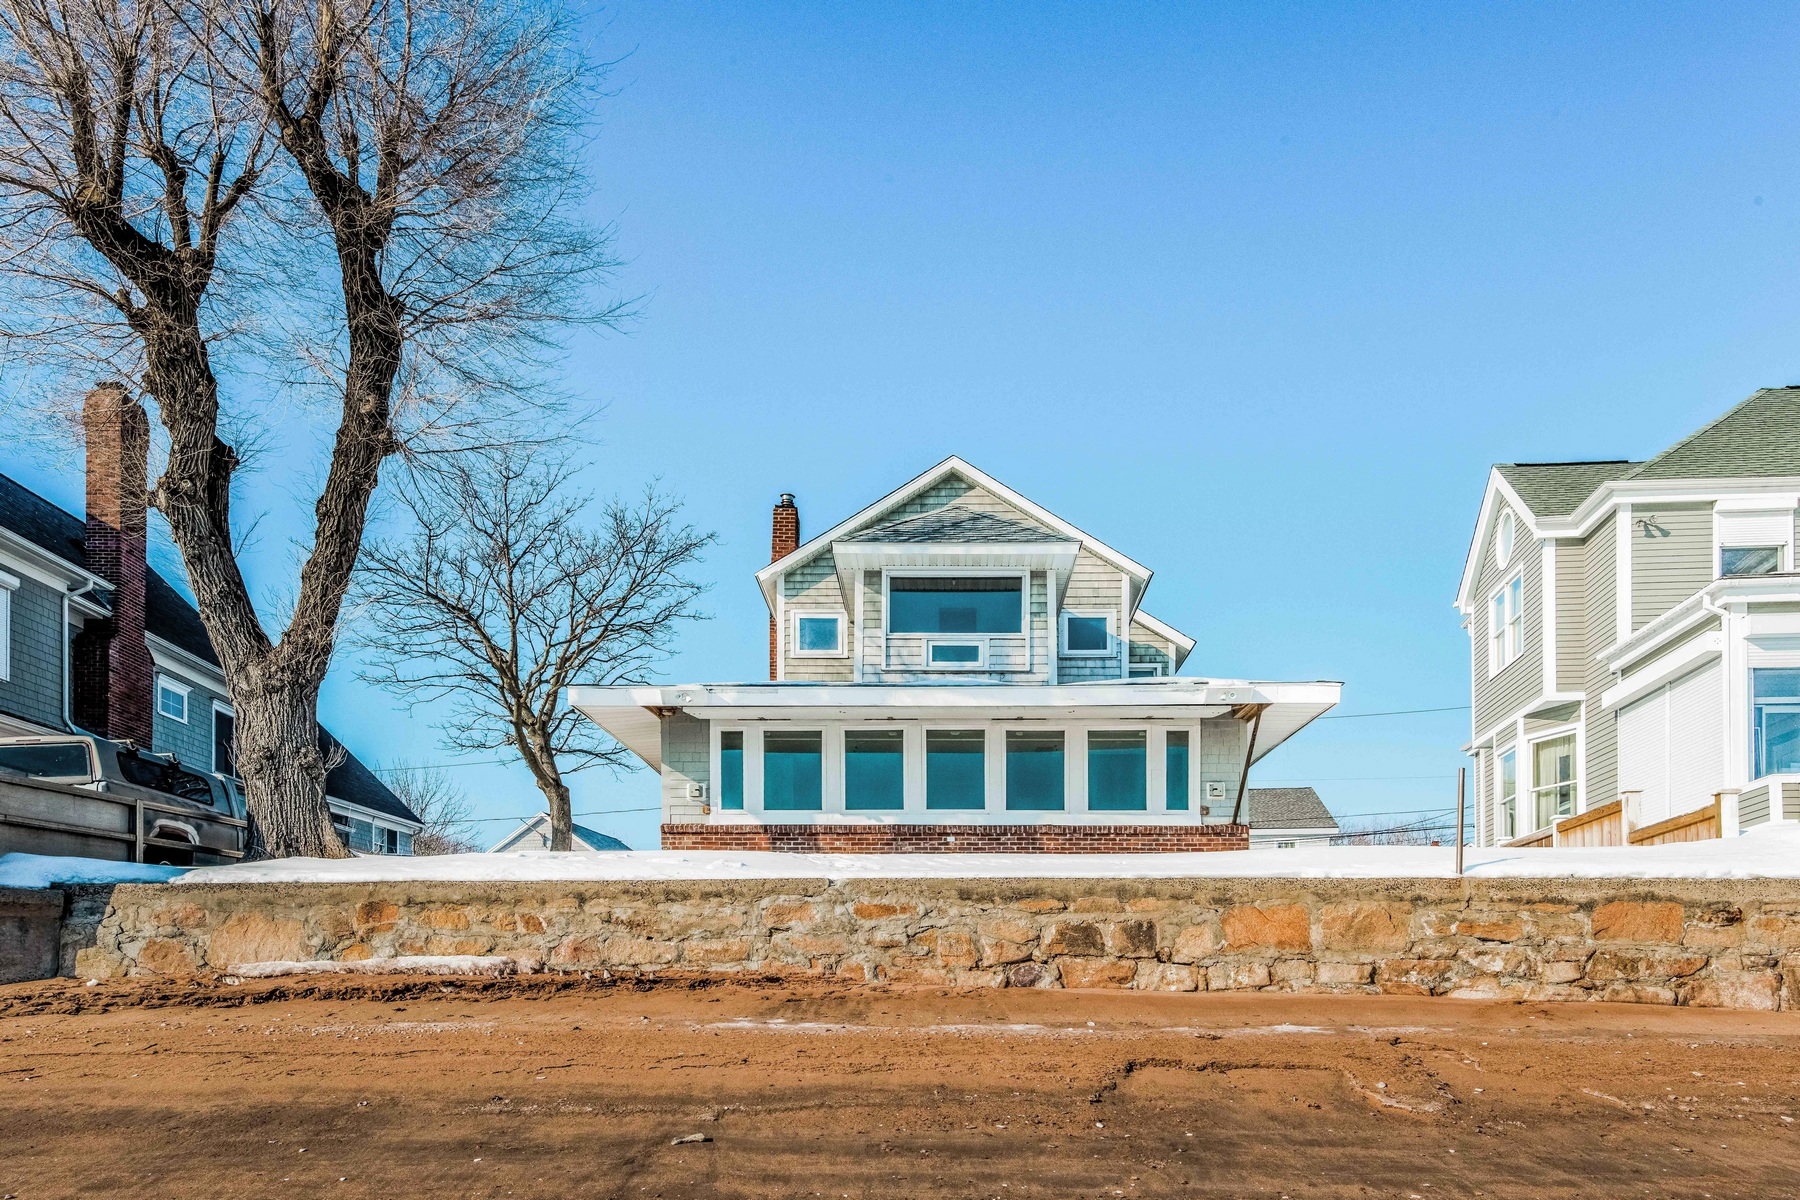 Single Family Home for Sale at 40-44 Bristol St Branford, Connecticut 06405 United States